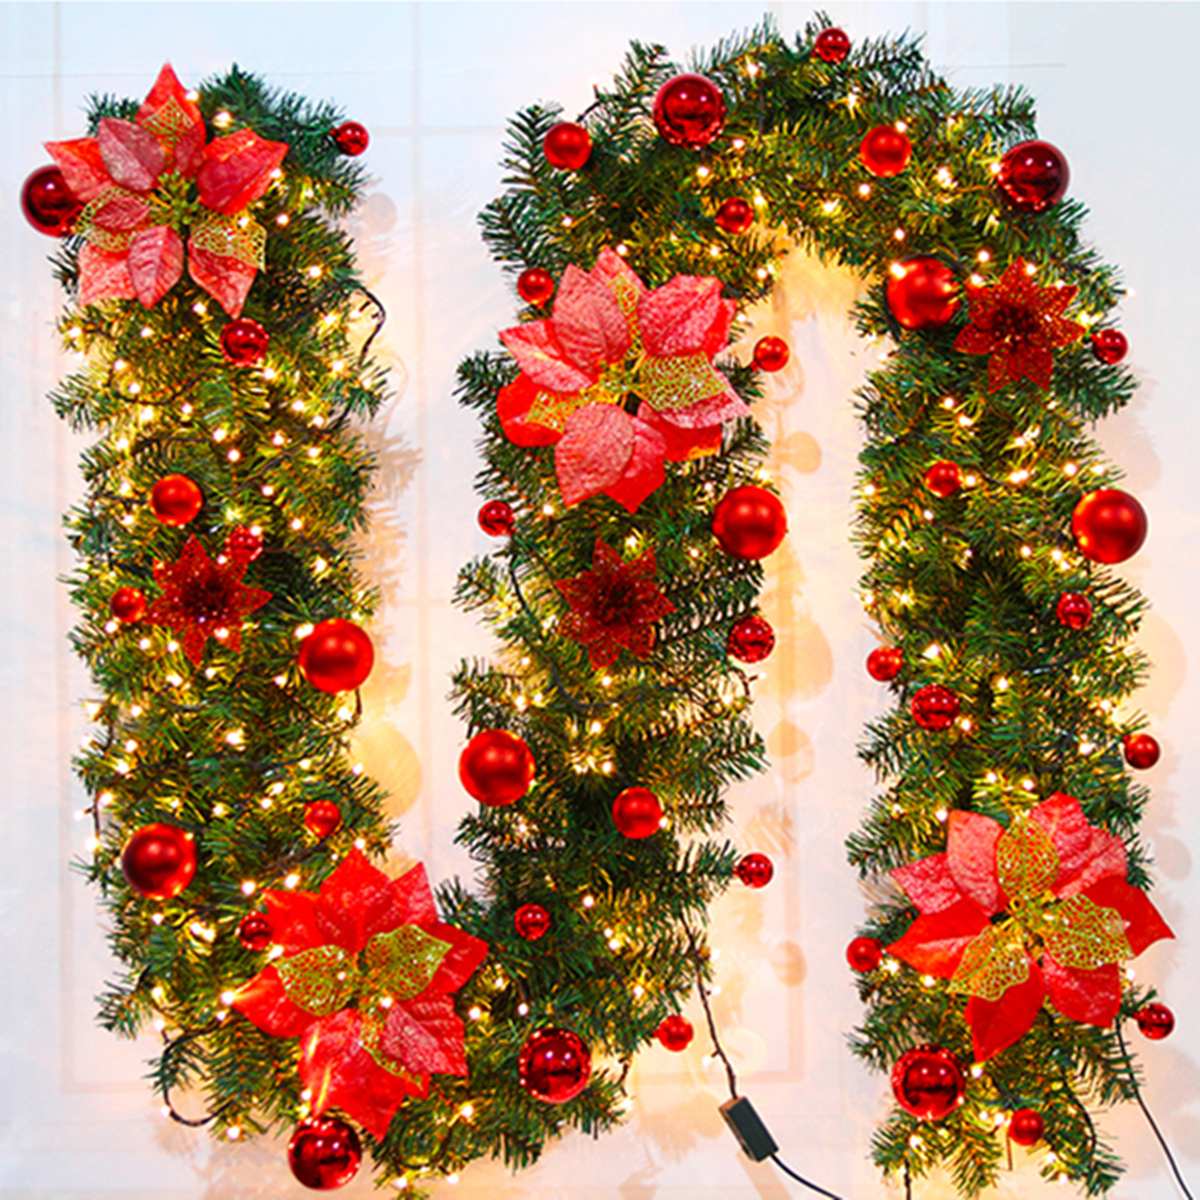 2.7M Christmas Decor Ornaments Christmas Tree Garland Rattan Bows Cane Home Wall Pine Decorations